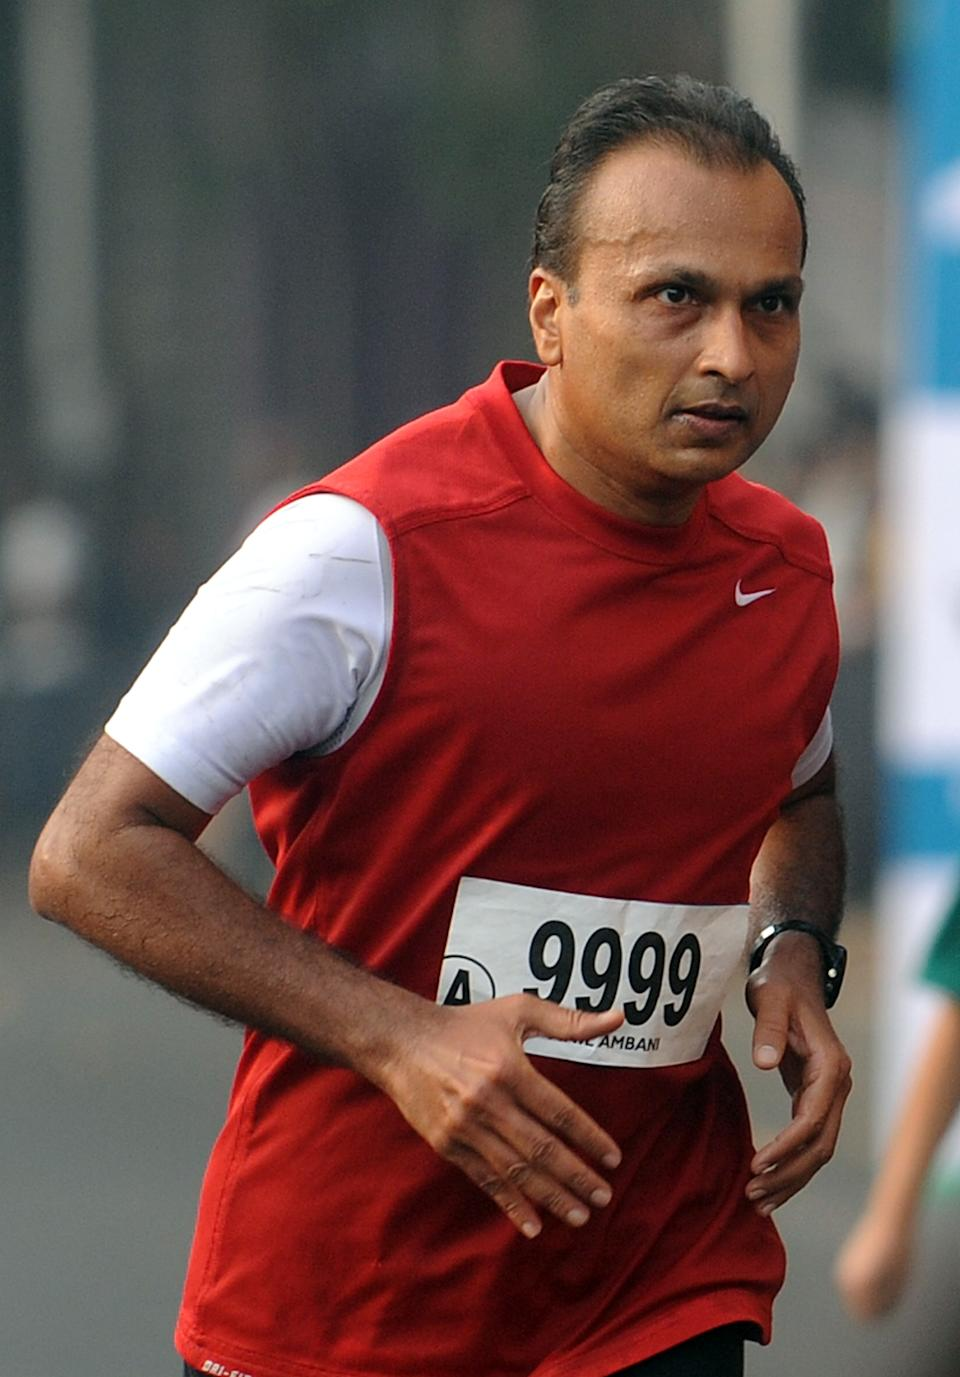 Indian industrialist Anil Ambani runs during the Standard Chartered Mumbai Marathon 2012, in Mumbai on January 15, 2012. Laban Moiben of Kenya won the race in a time of 2:10:48 hours. AFP PHOTO/Punit PARANJPE